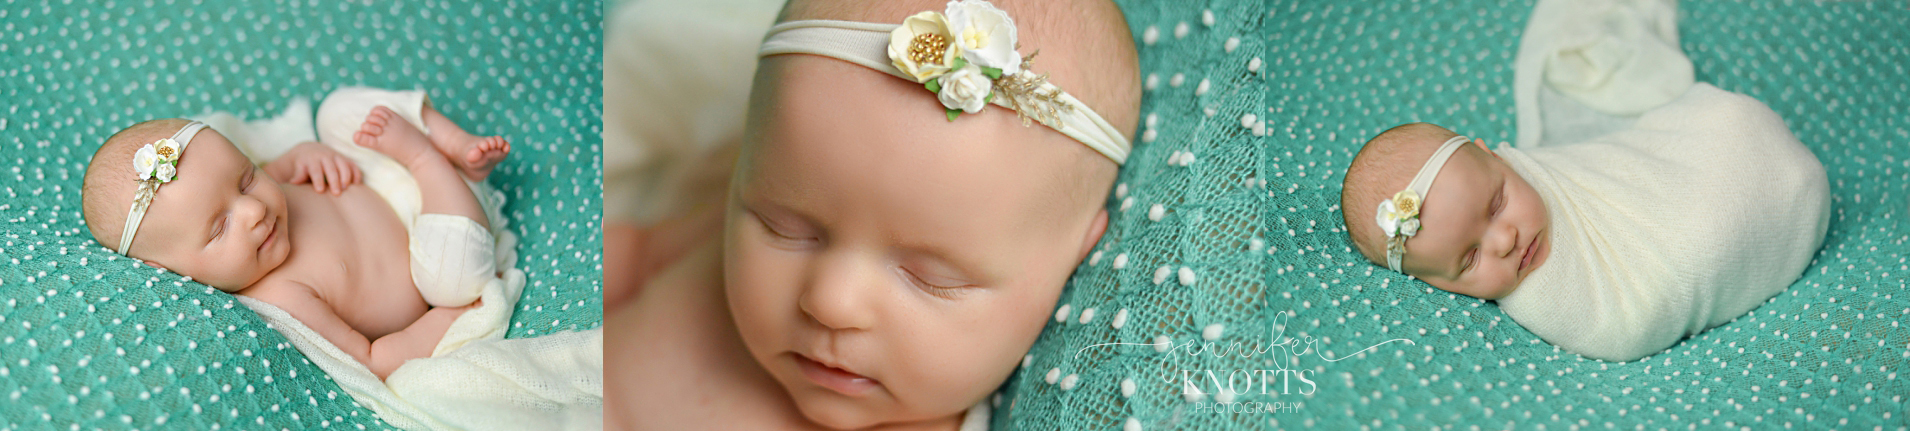 baby girl sleeps on teal and white blanket wearing floral headband